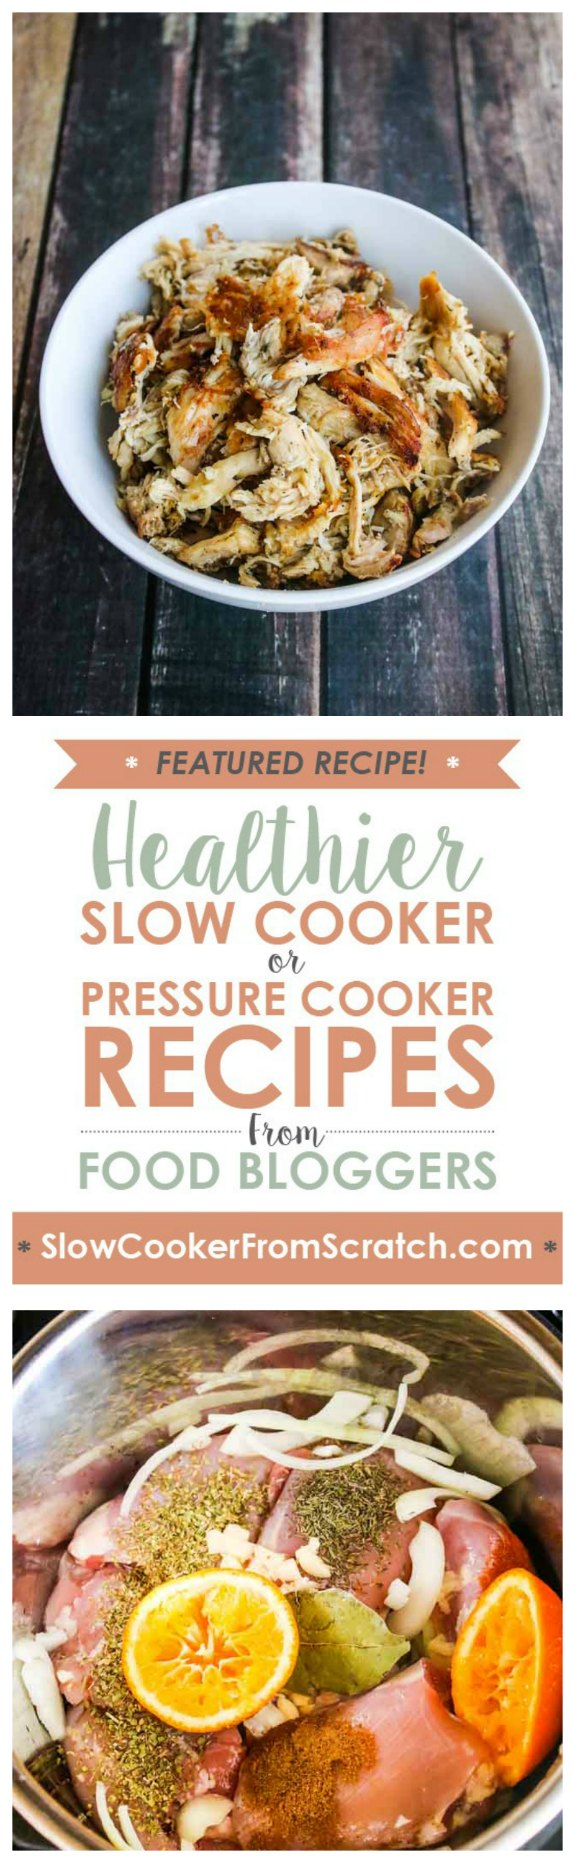 Instant Pot or Slow Cooker Chicken Carnitas from Jeanette's Healthy Living featured on Slow Cooker or Pressure Cooker at SlowCookerFromScratch.com